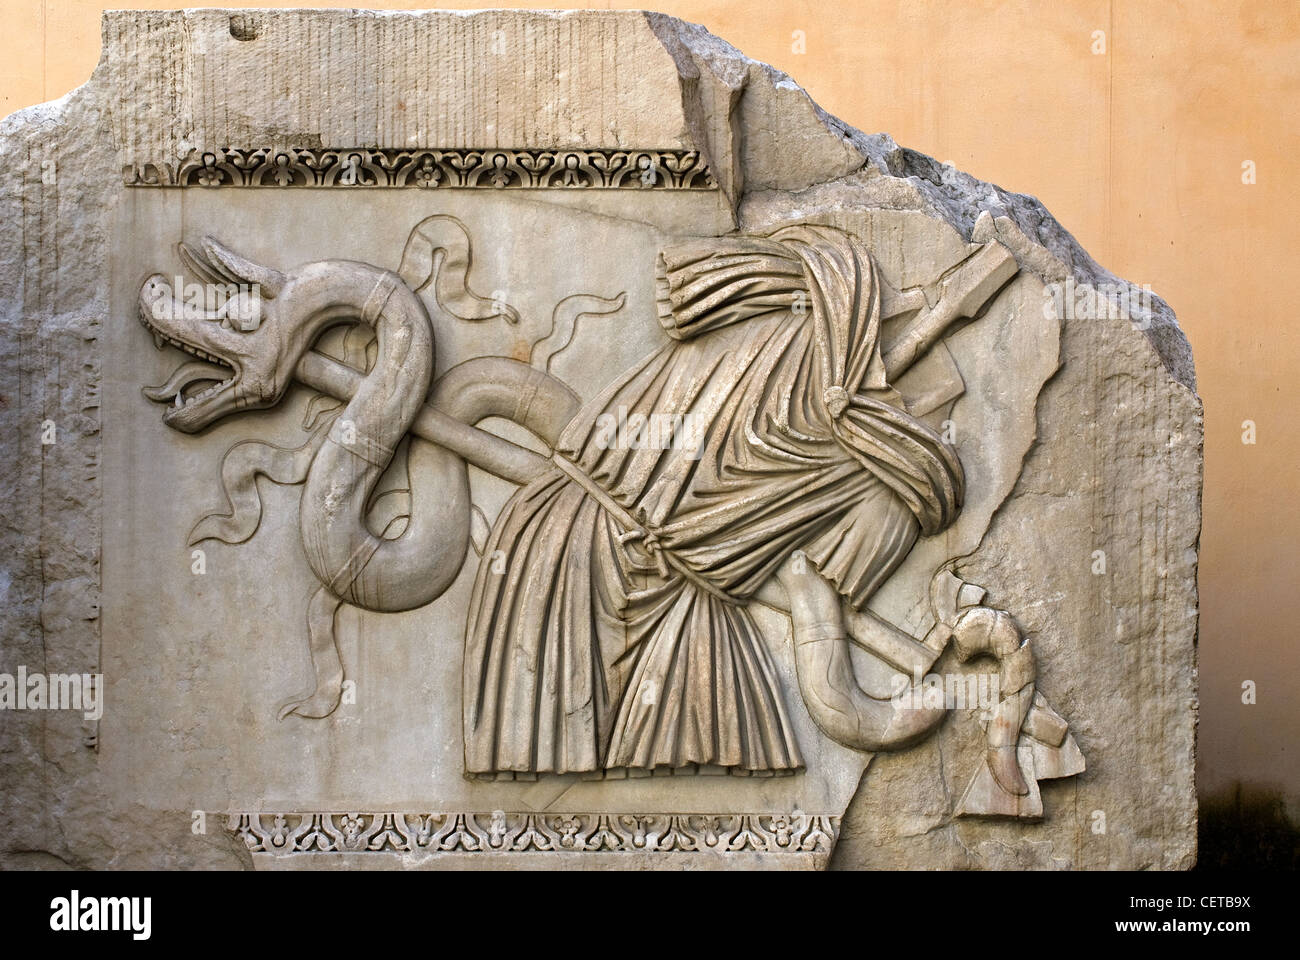 Plinth from Temple of Hadrian, courtyard of Palazzo dei Conservatori, Rome, Latium, Italy - Stock Image